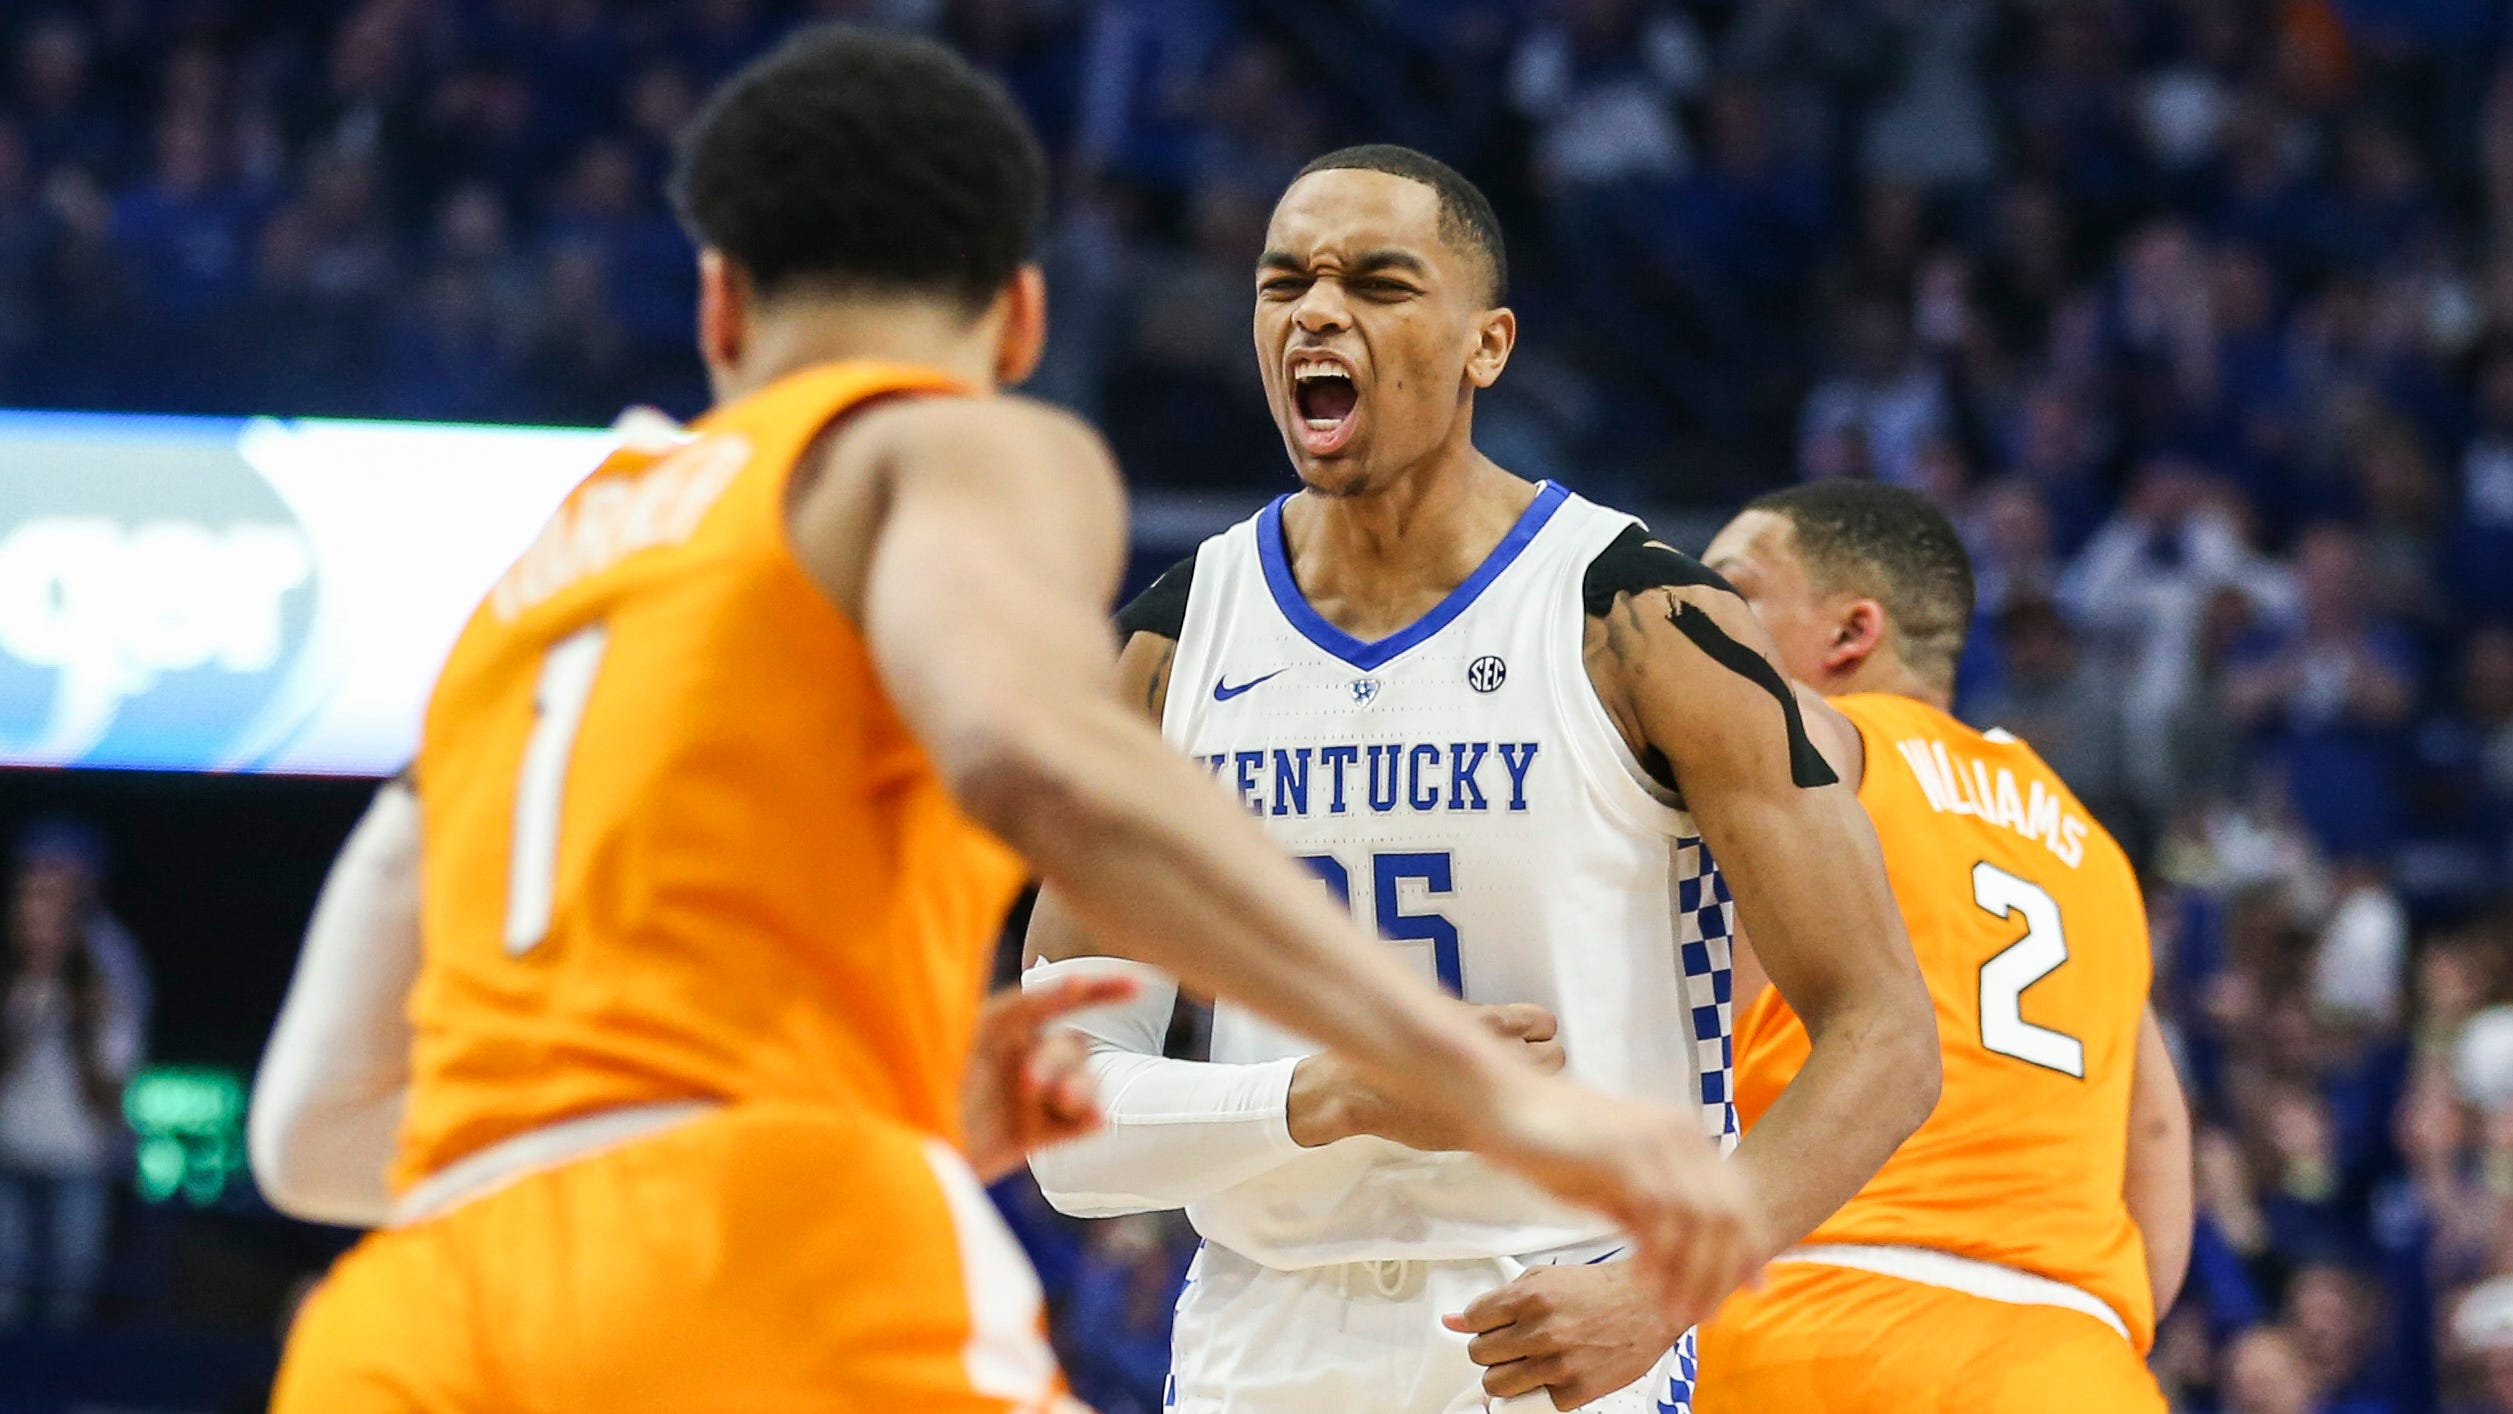 Uk Basketball: UT Vols Vs Kentucky Basketball: Wildcats Destroy Tennessee